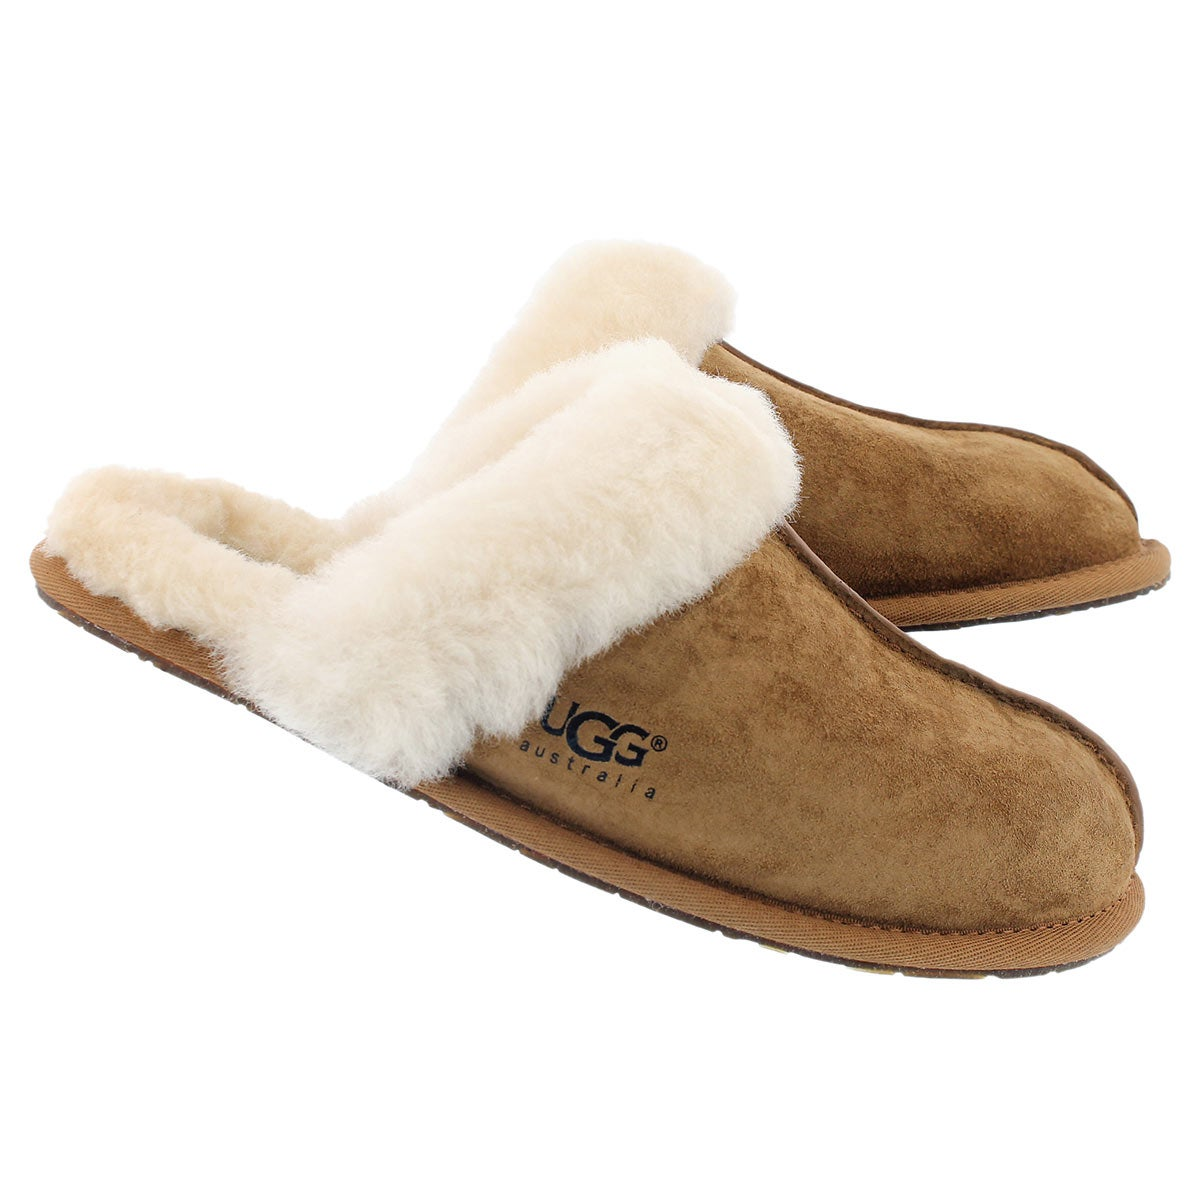 Lds Scuffette chestnut sheepskin slipper